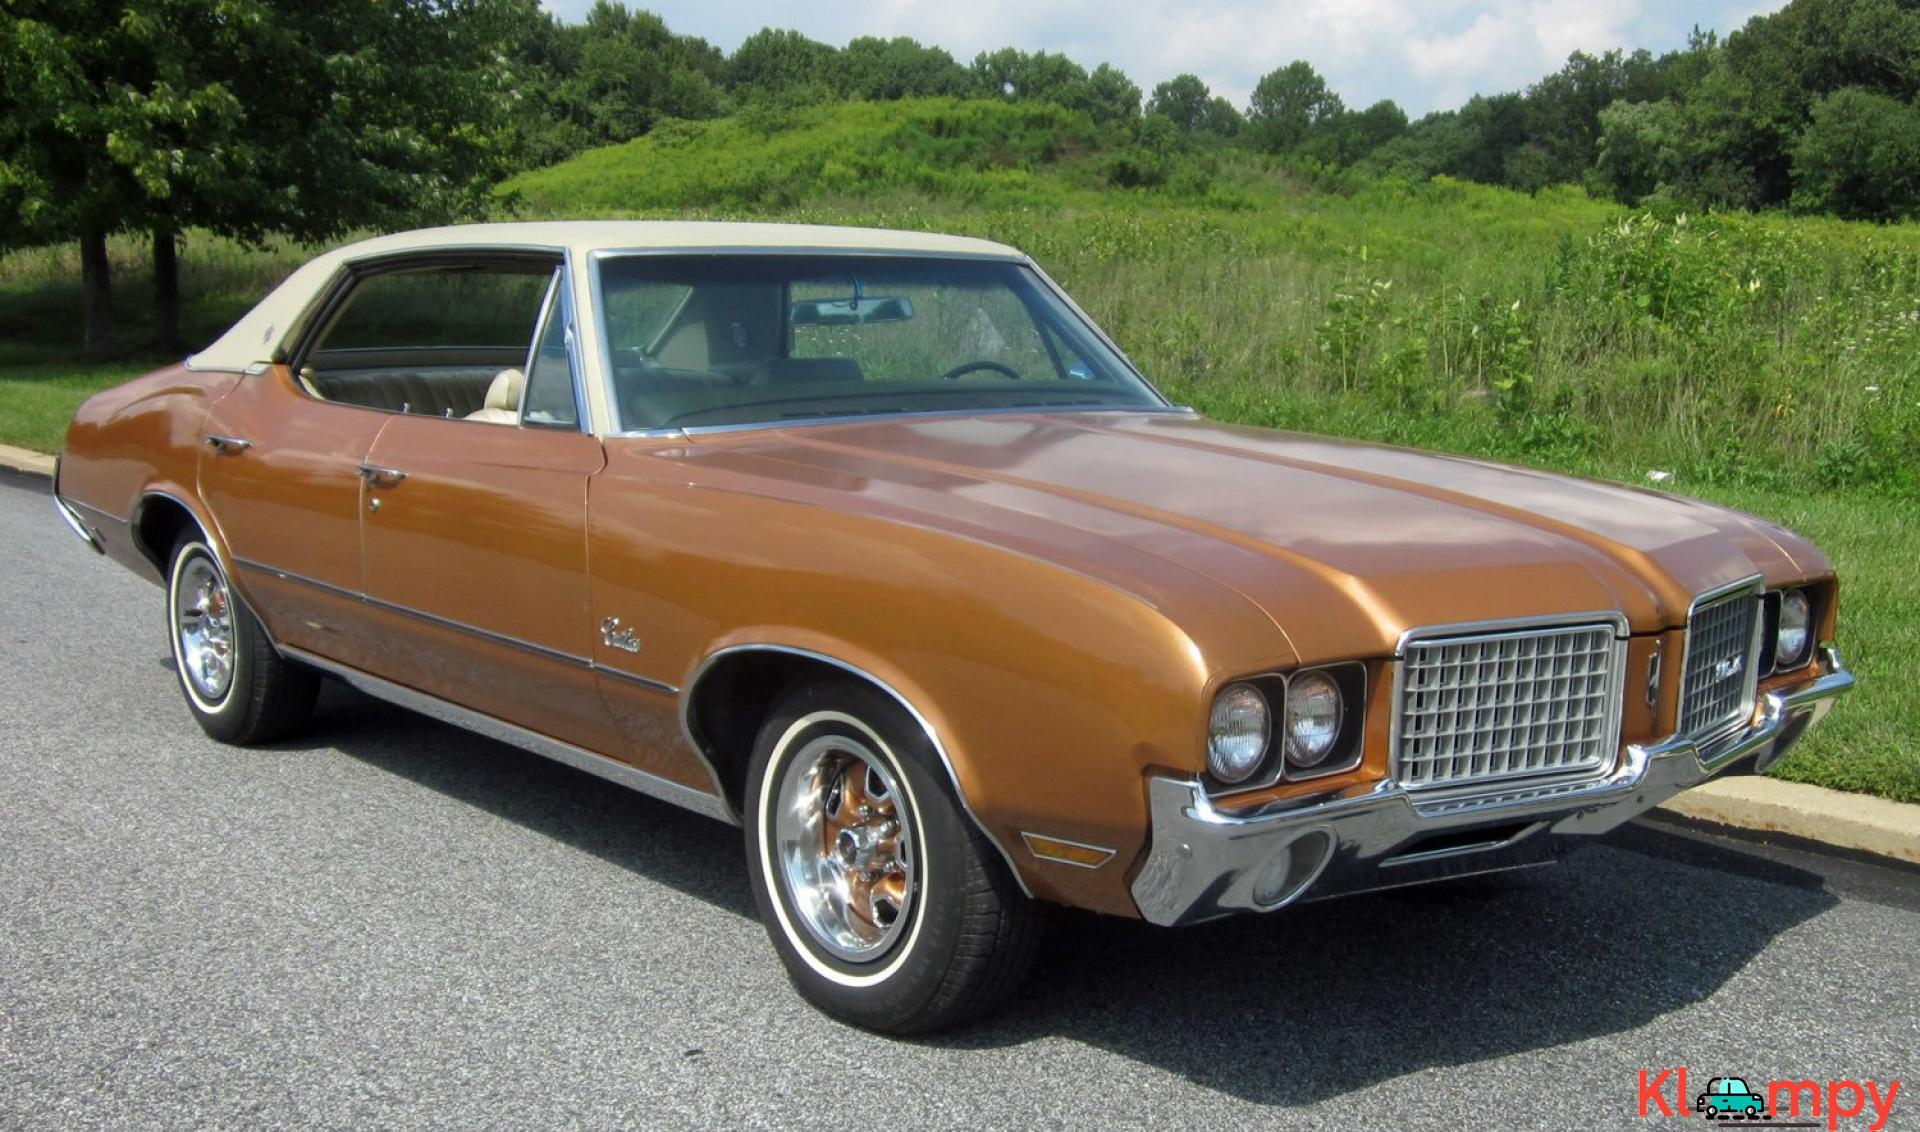 1972 Oldsmobile Cutlass Sport Sedan V8 - 8/20